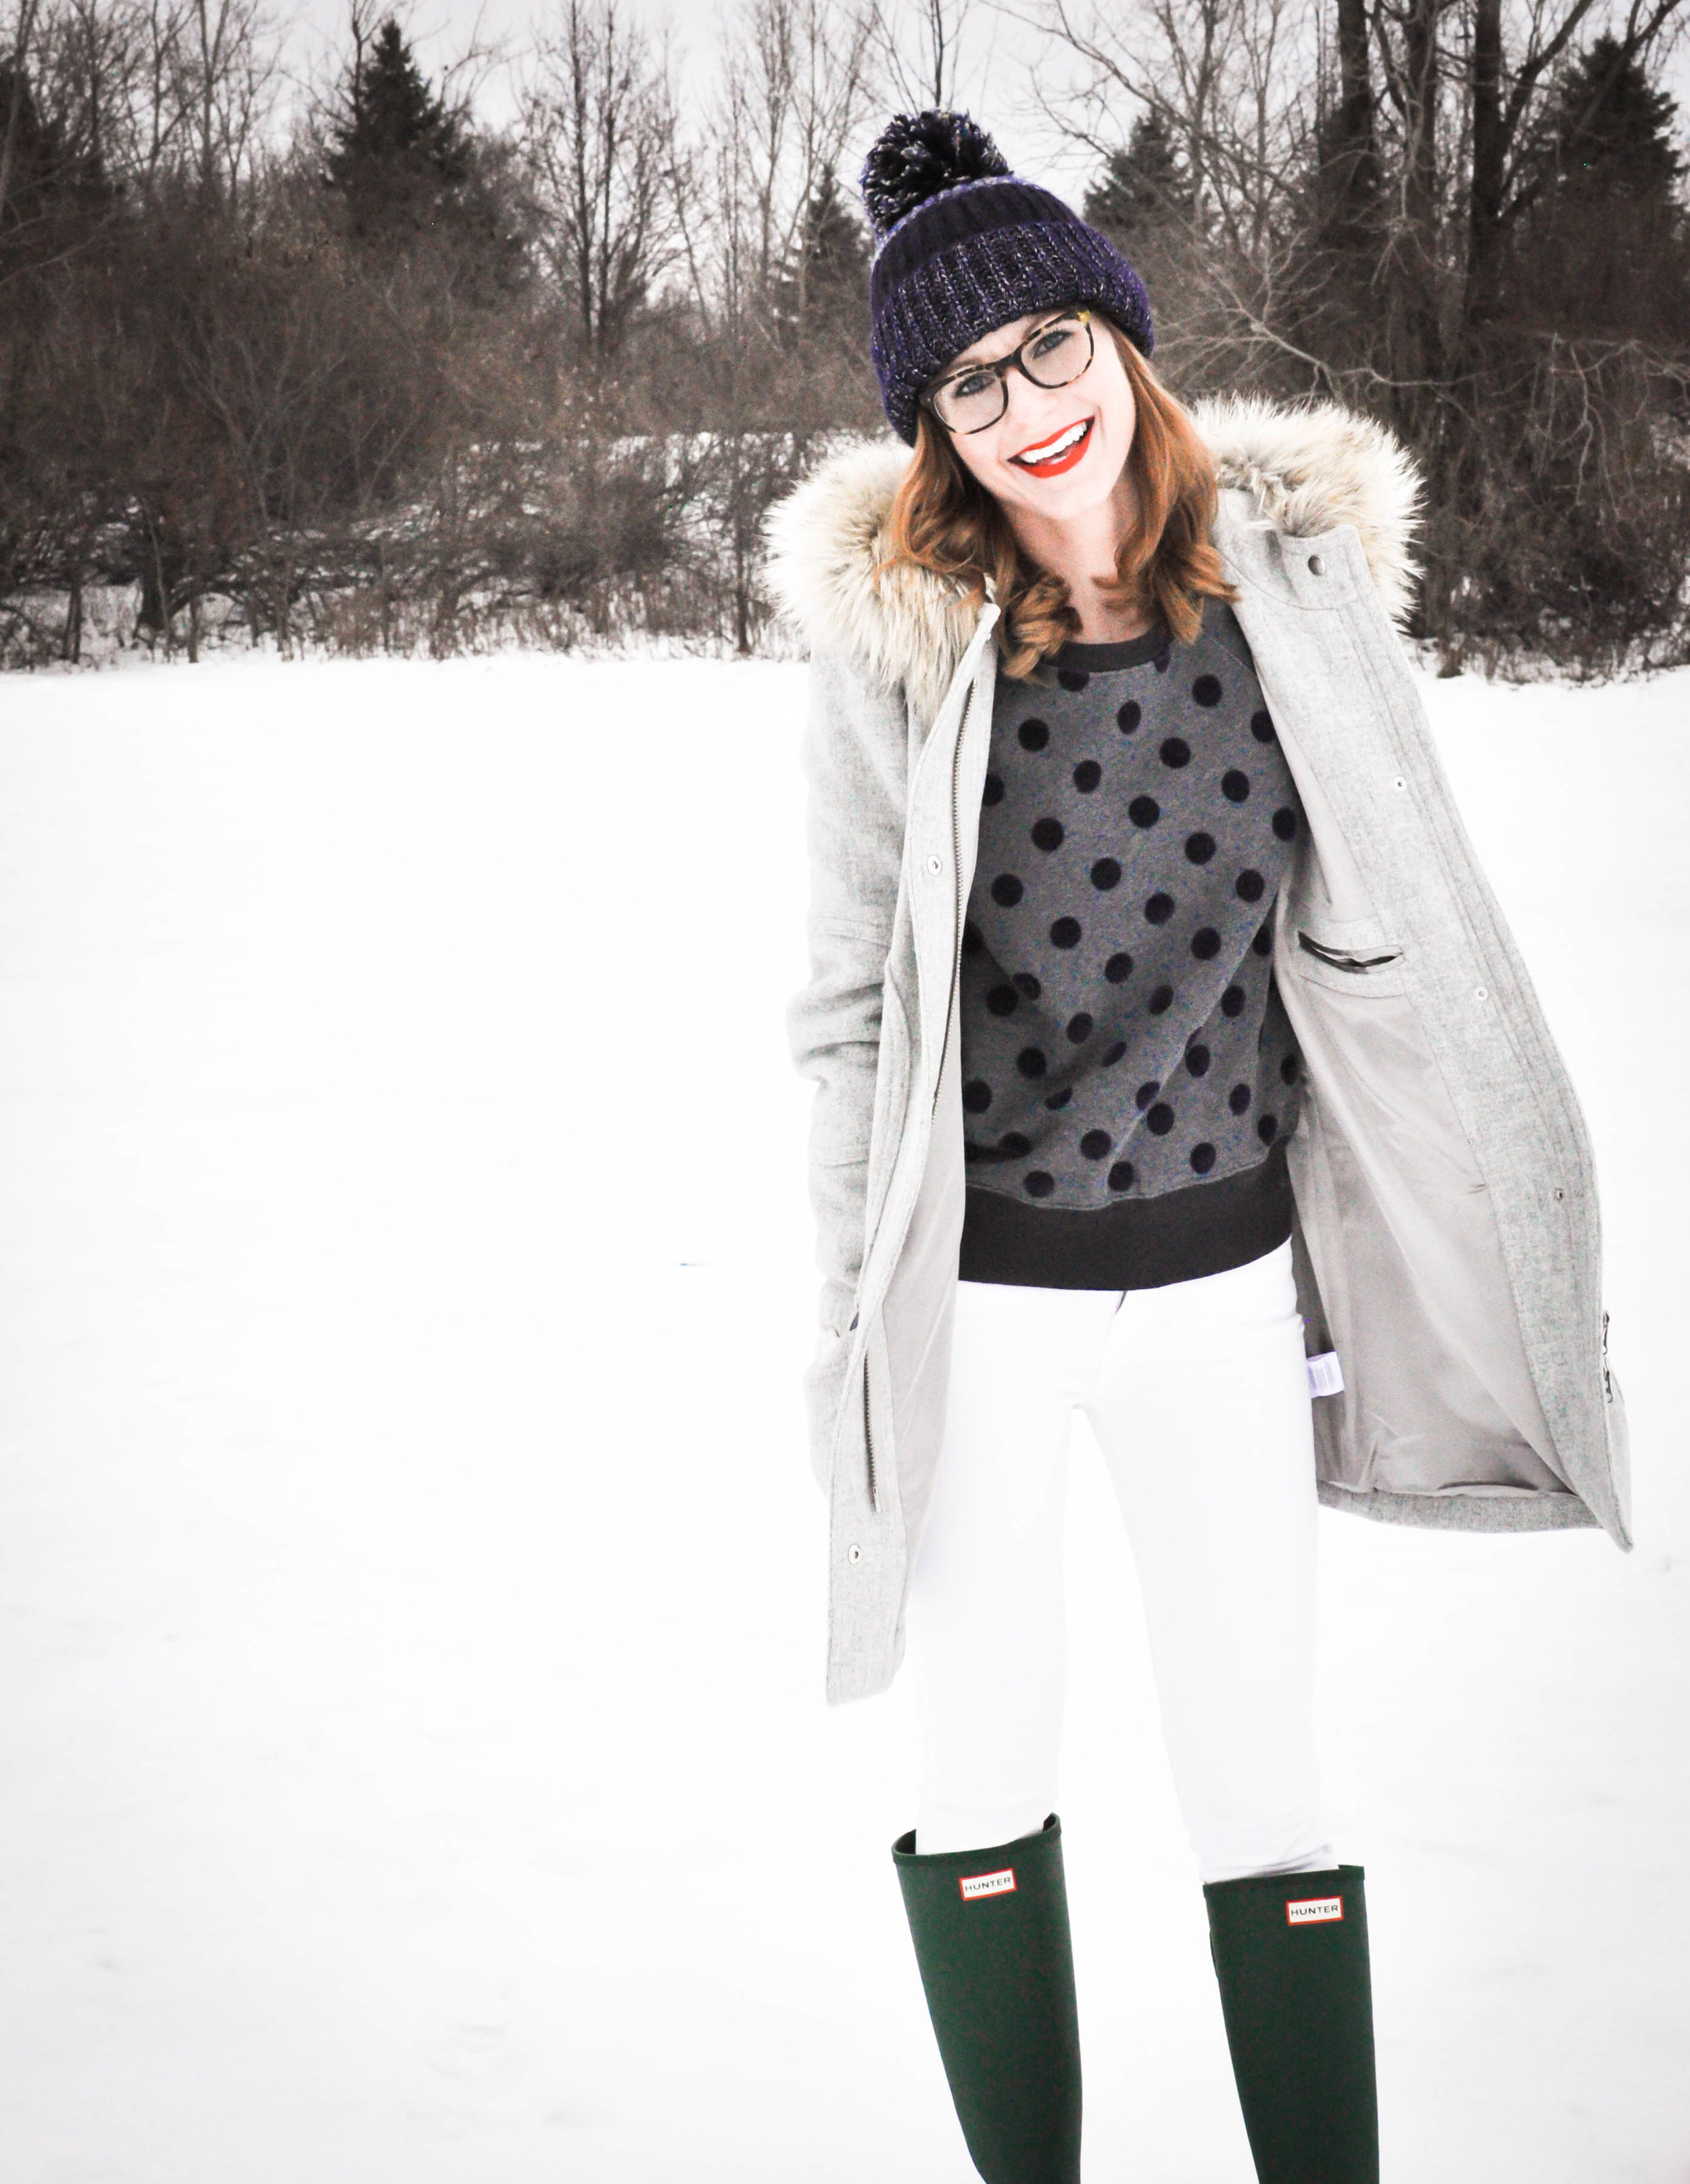 Woman in winter clothes in snow smiling at camera